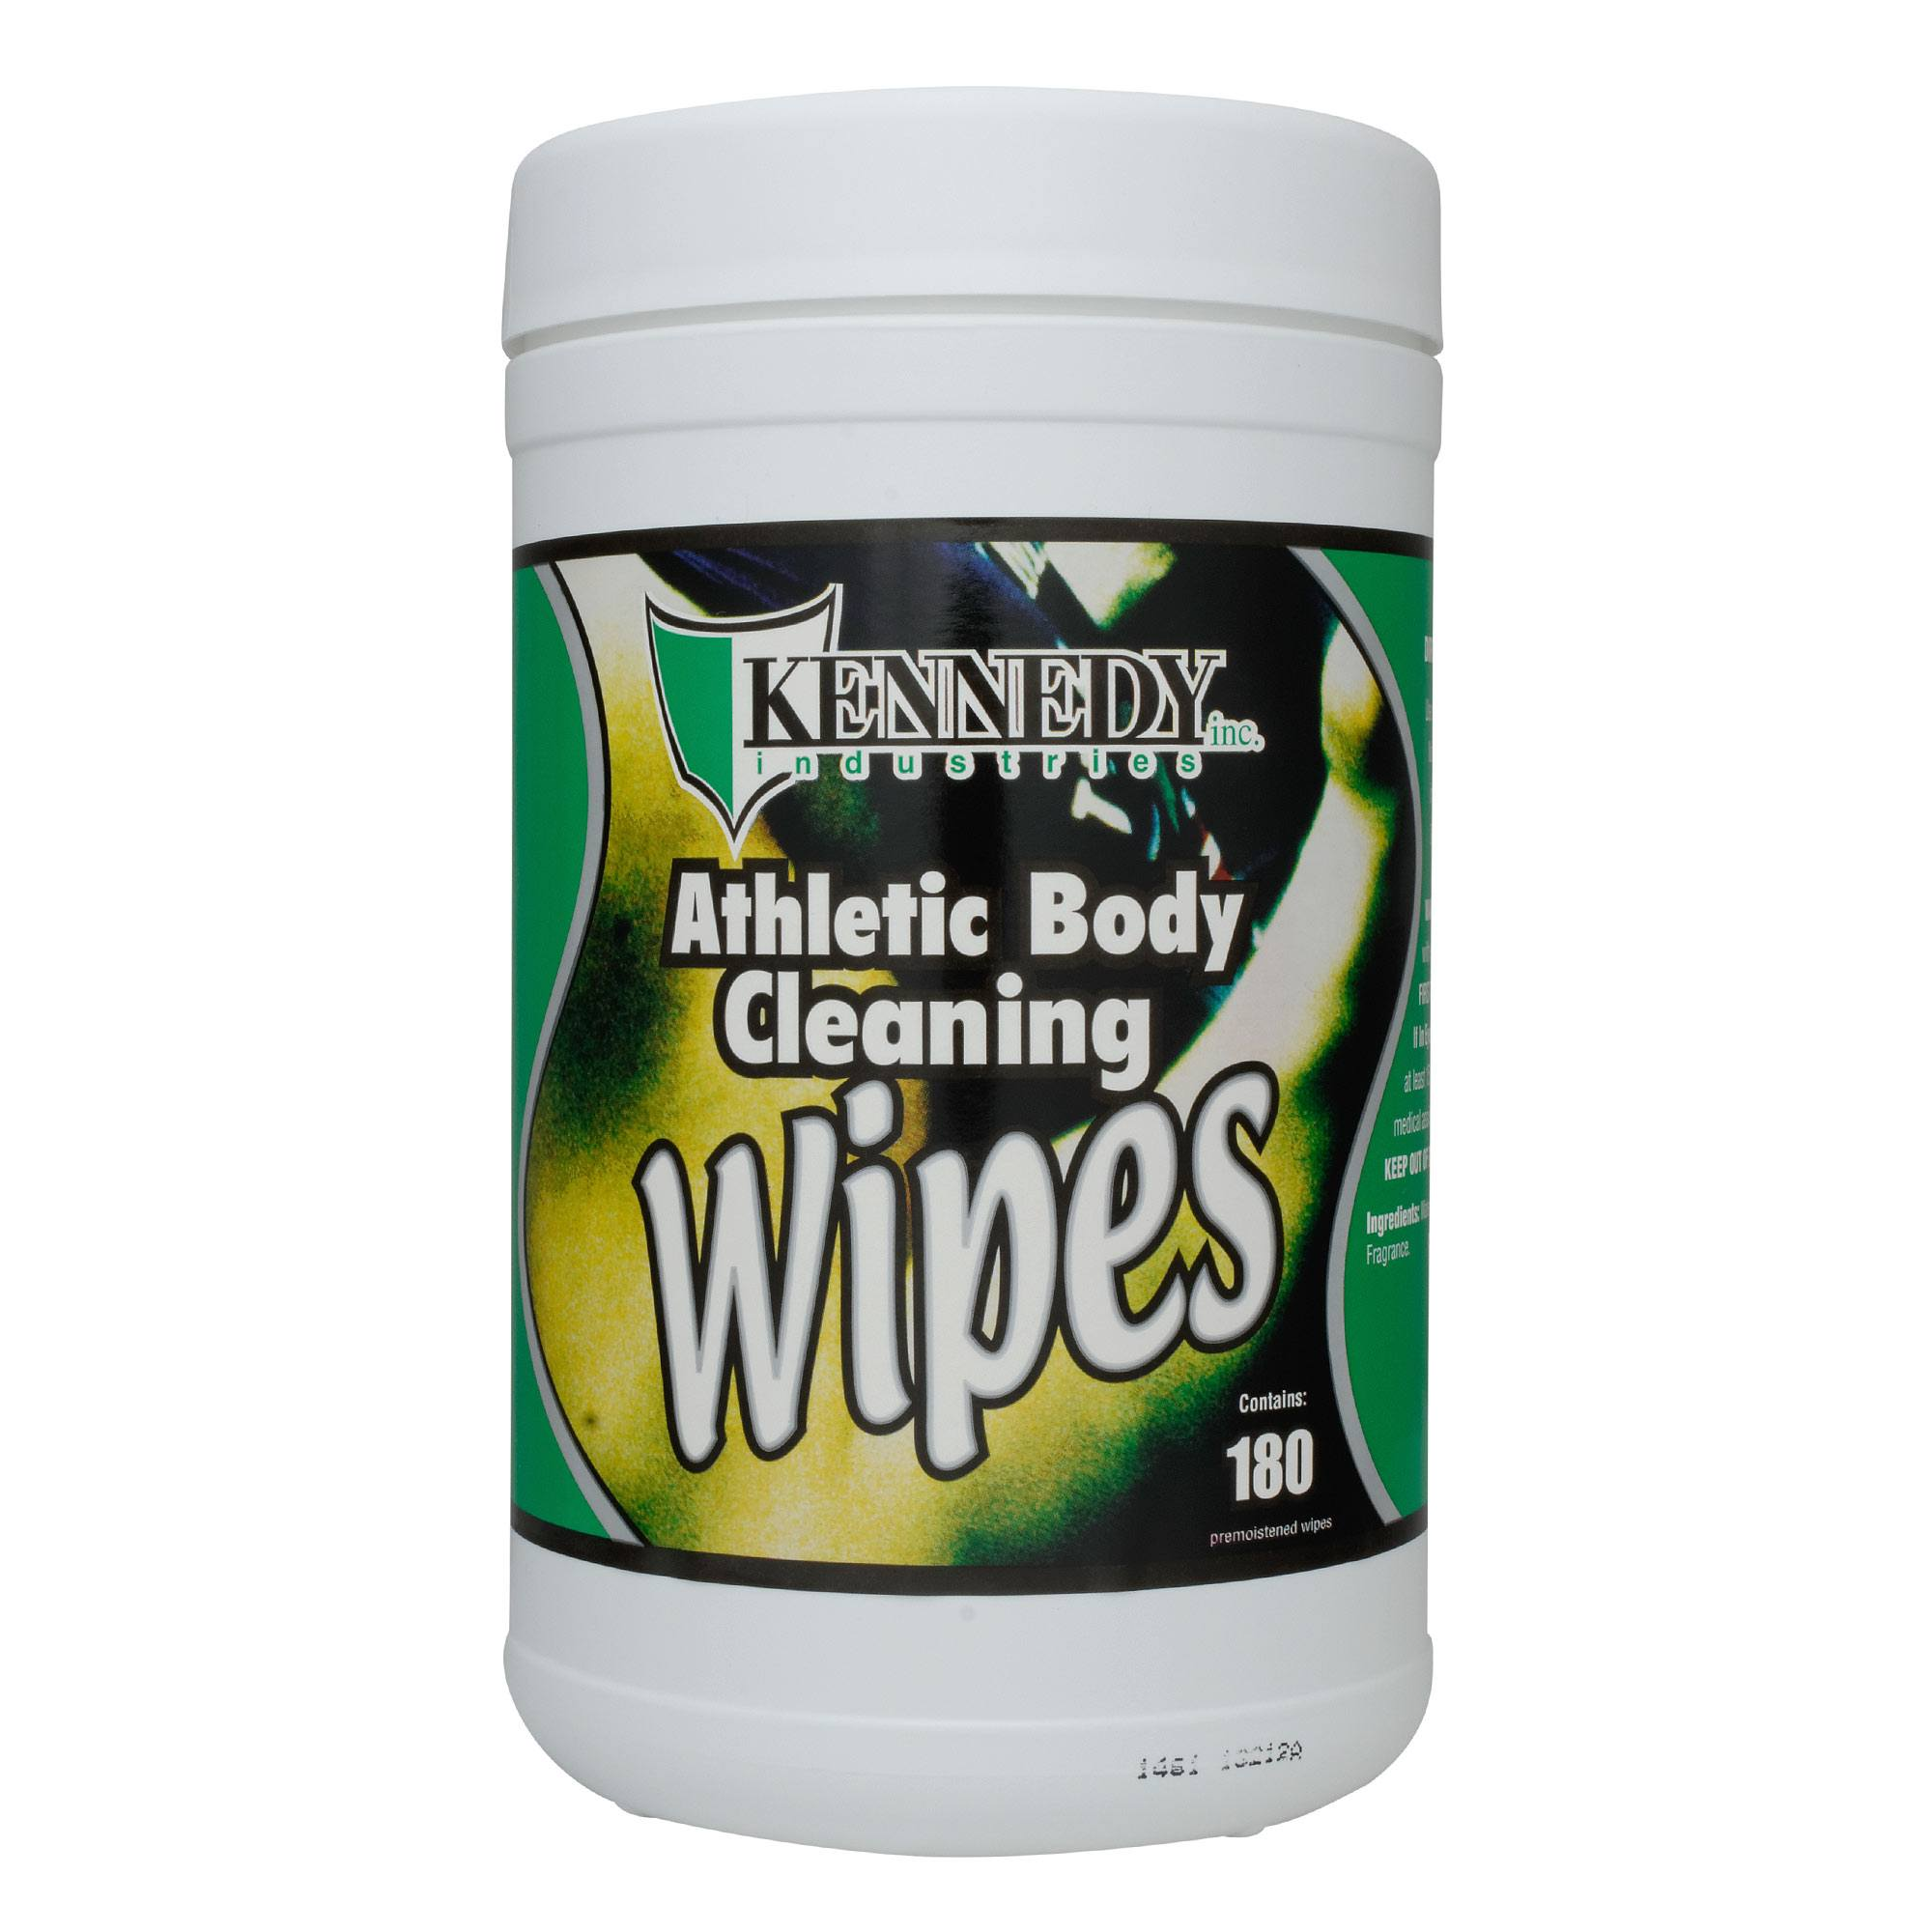 Kennedy Athletic Body Cleaning Wipes Personal Cleaning